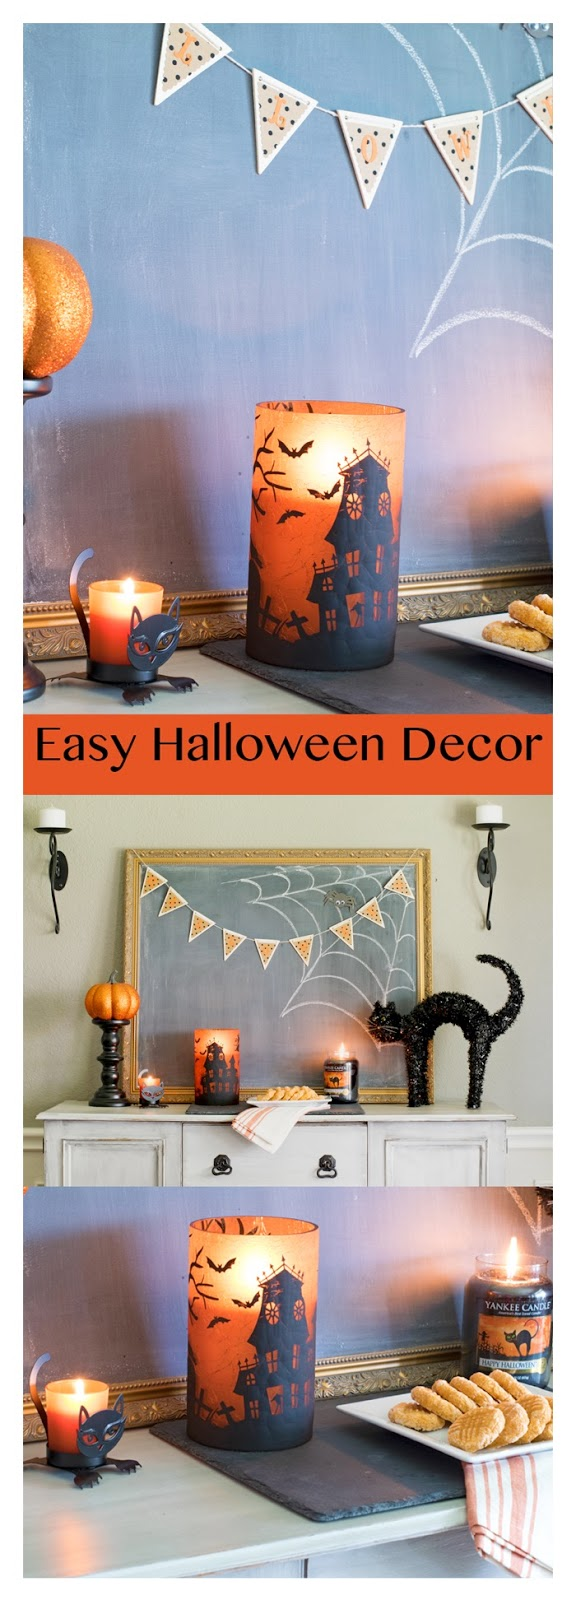 Easy Halloween Decor! Looking for a fast and inexpensive way to style a mantel, buffet or other small space? See how Yankee Candles and a few other thrifted items can make a fun and spooky spot! #halloween #decor #ad